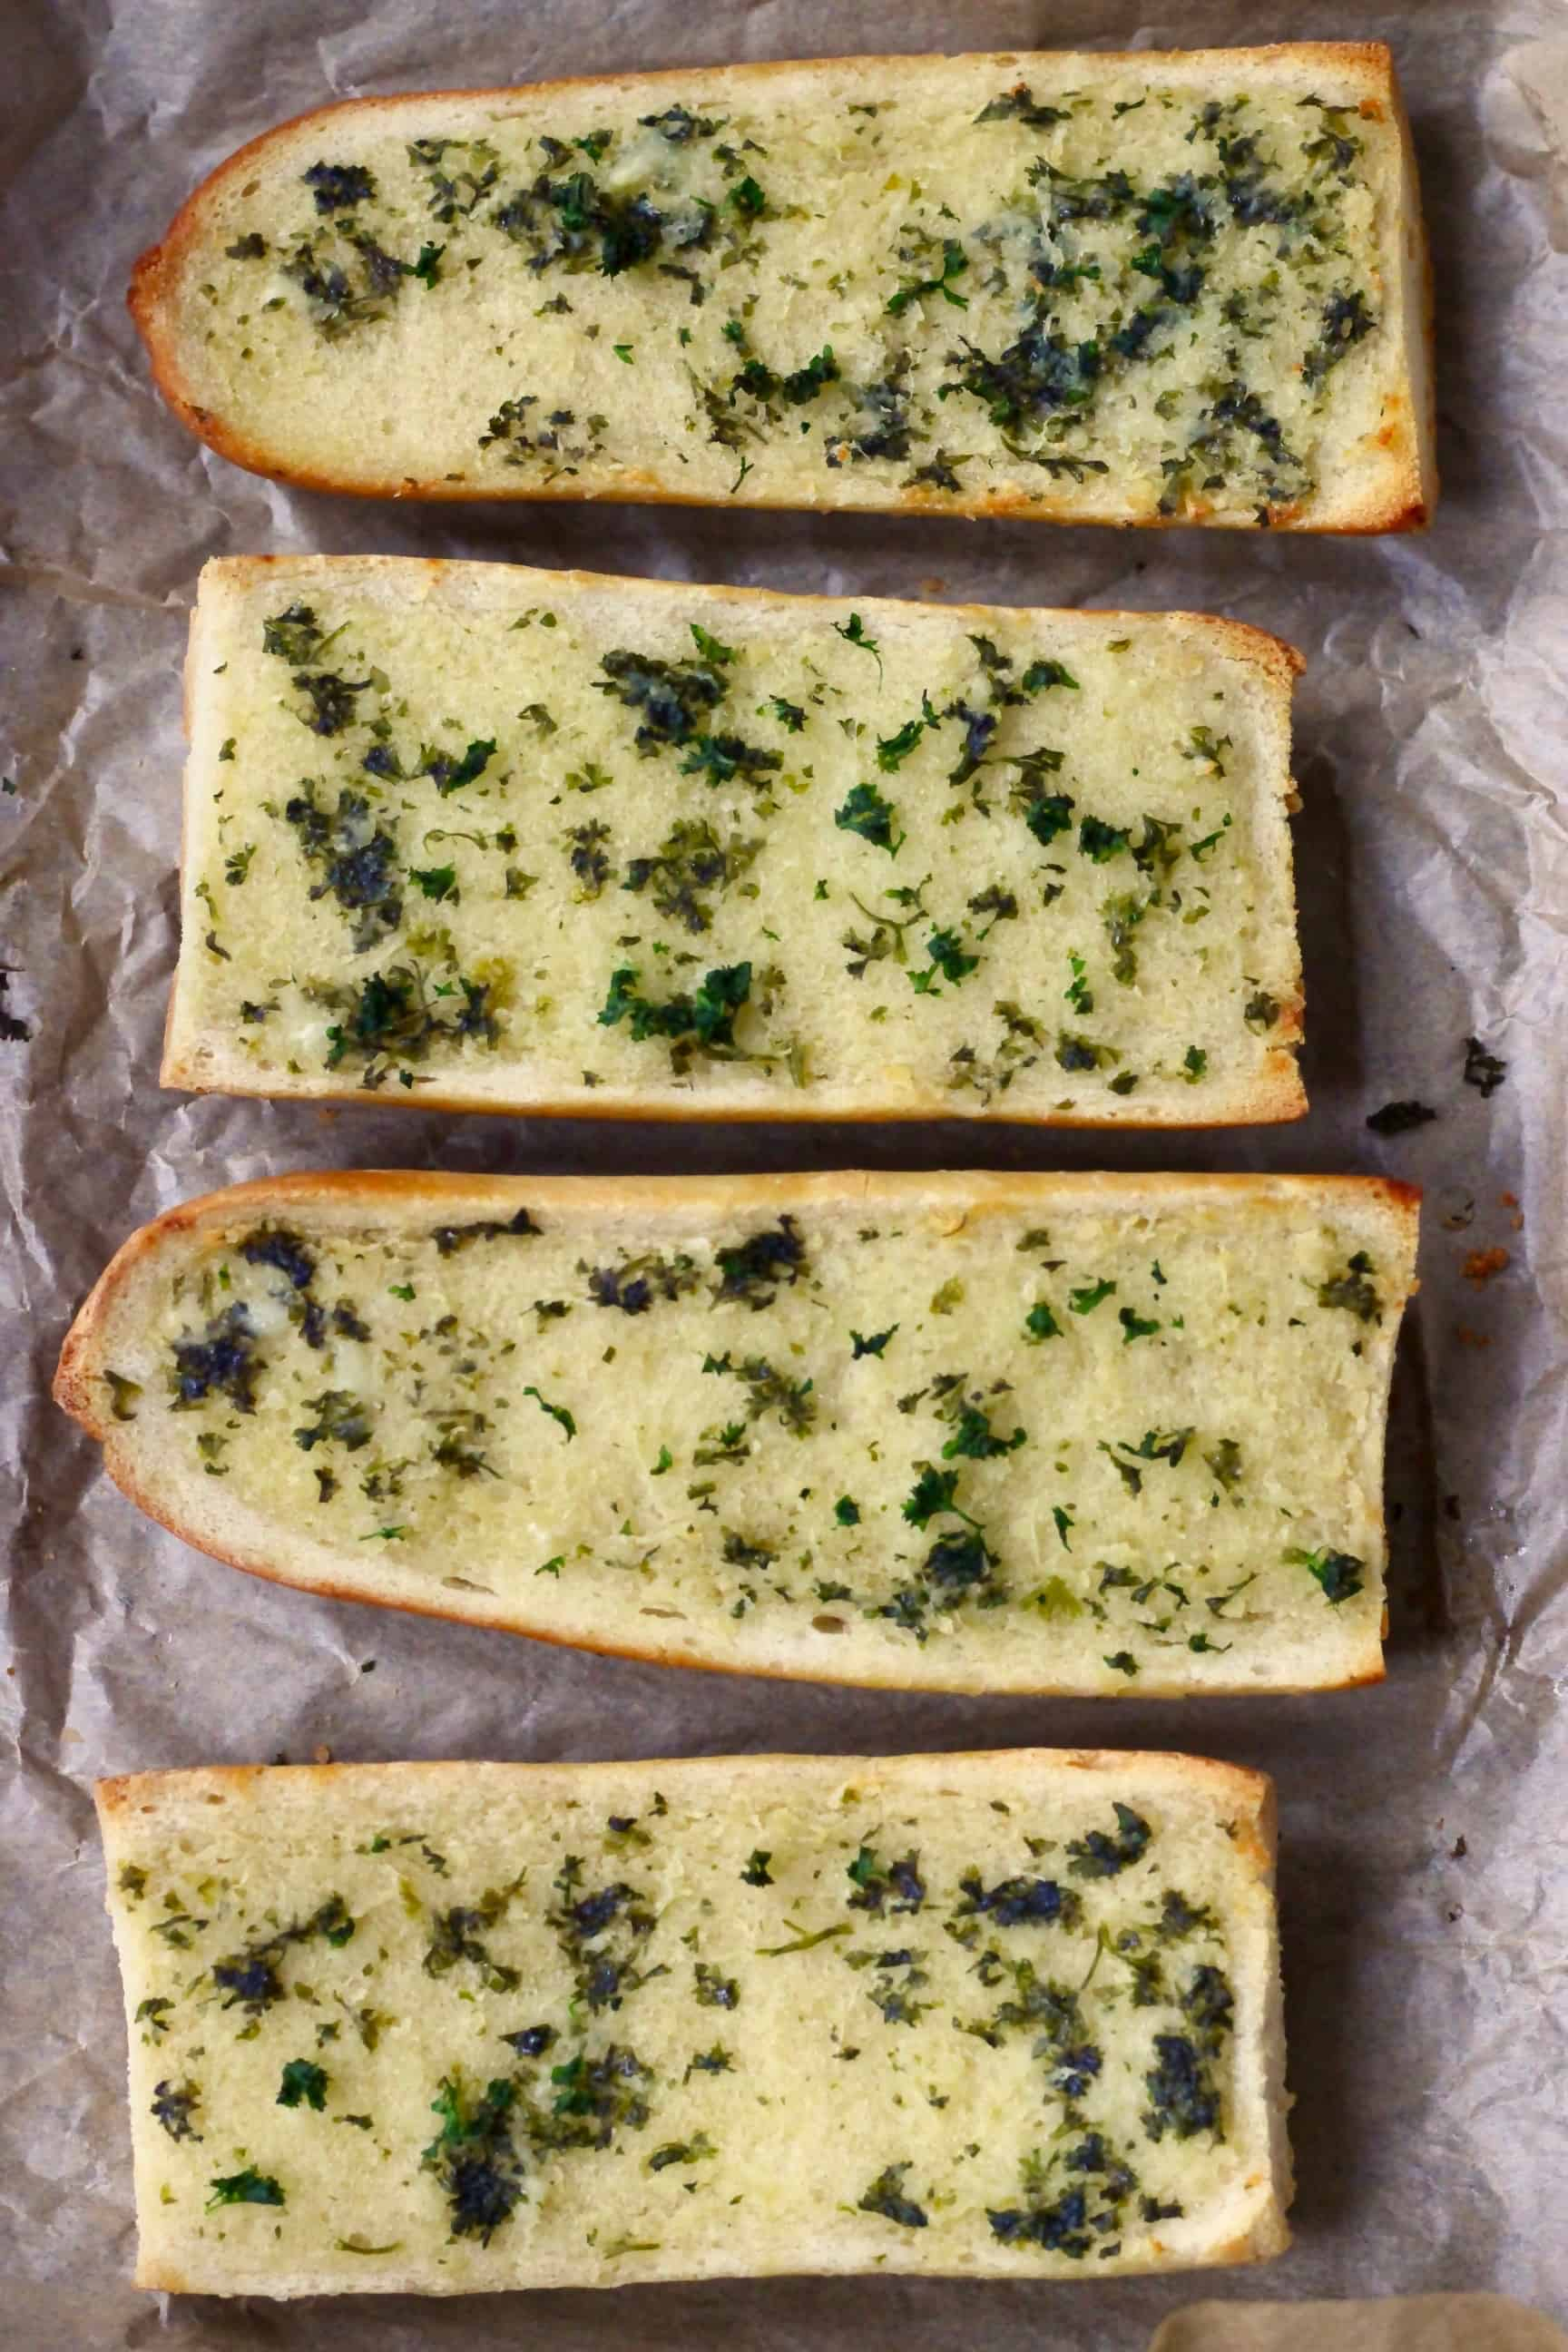 Four pieces of vegan garlic bread on a sheet of baking paper